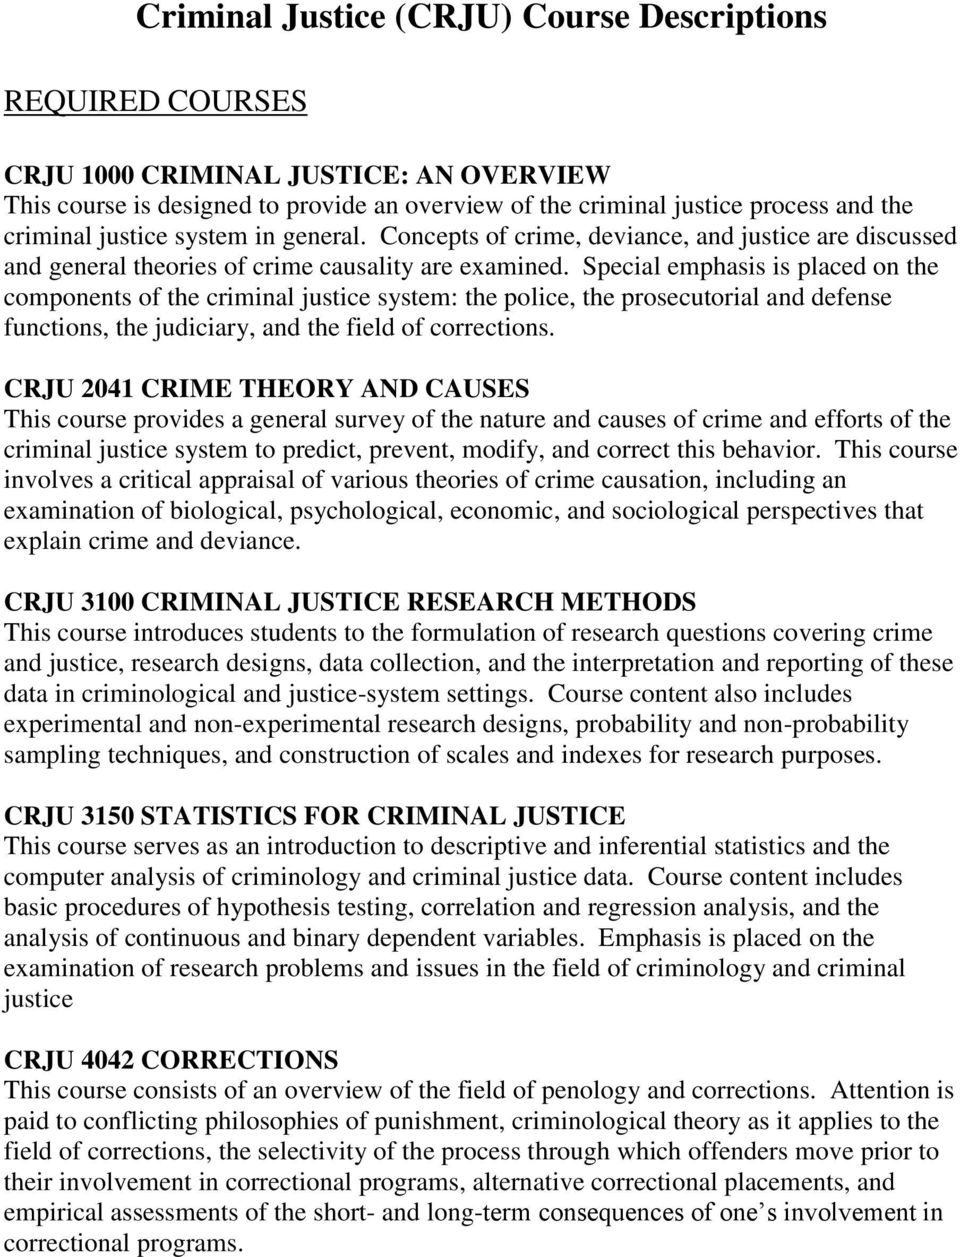 Special emphasis is placed on the components of the criminal justice system: the police, the prosecutorial and defense functions, the judiciary, and the field of corrections.